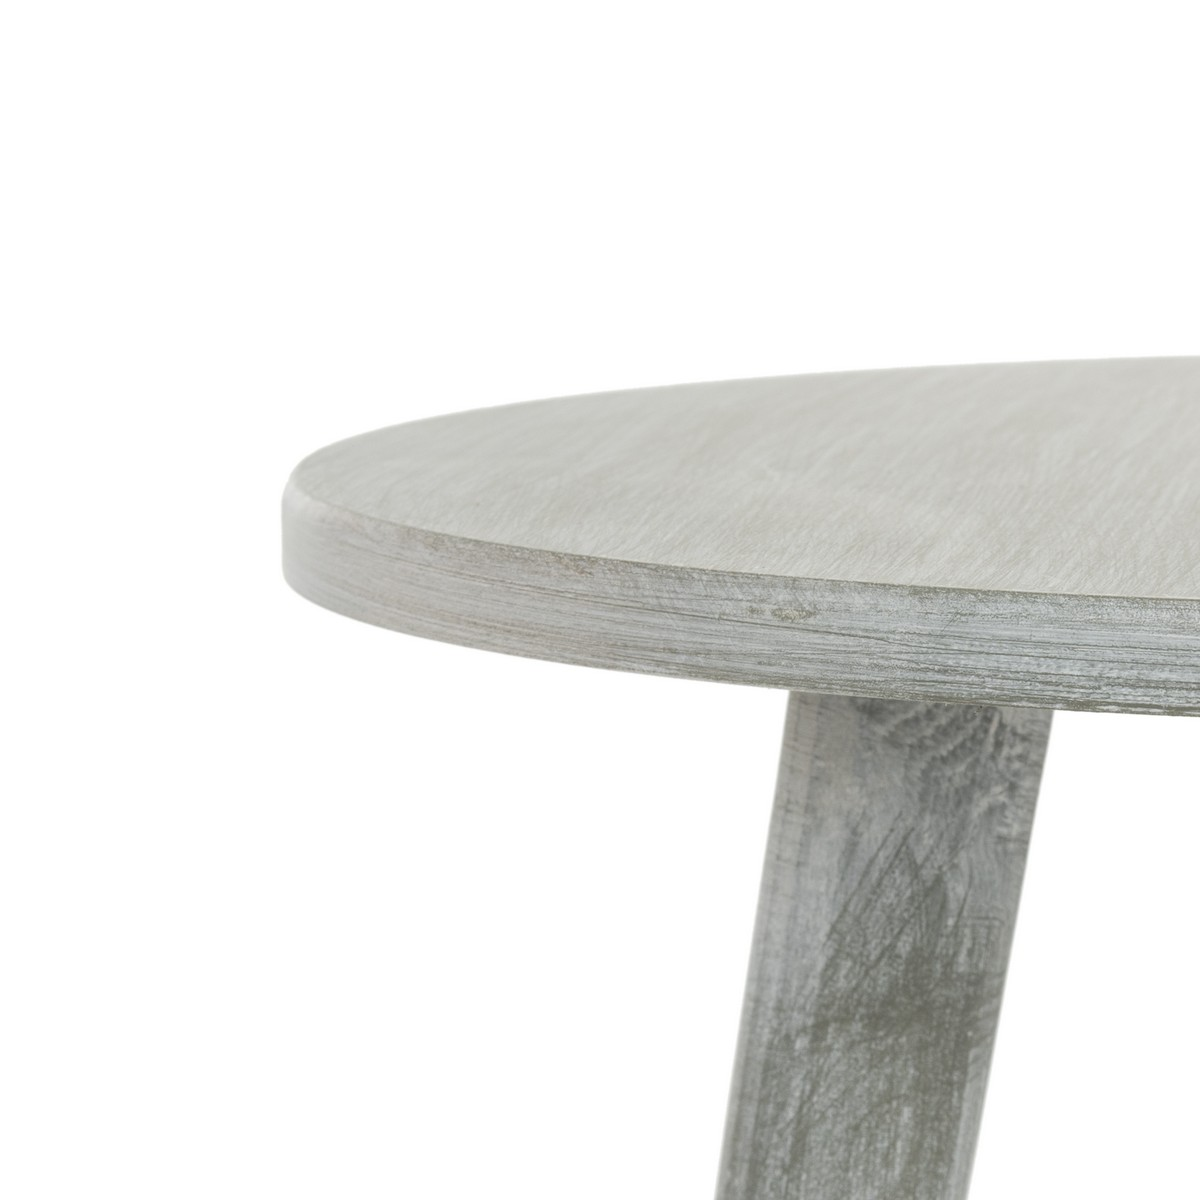 accent tables furniture safavieh detail grey round table product details small retro side drum seat throne hadley with drawer modern for living room canadian tire patio sets inch